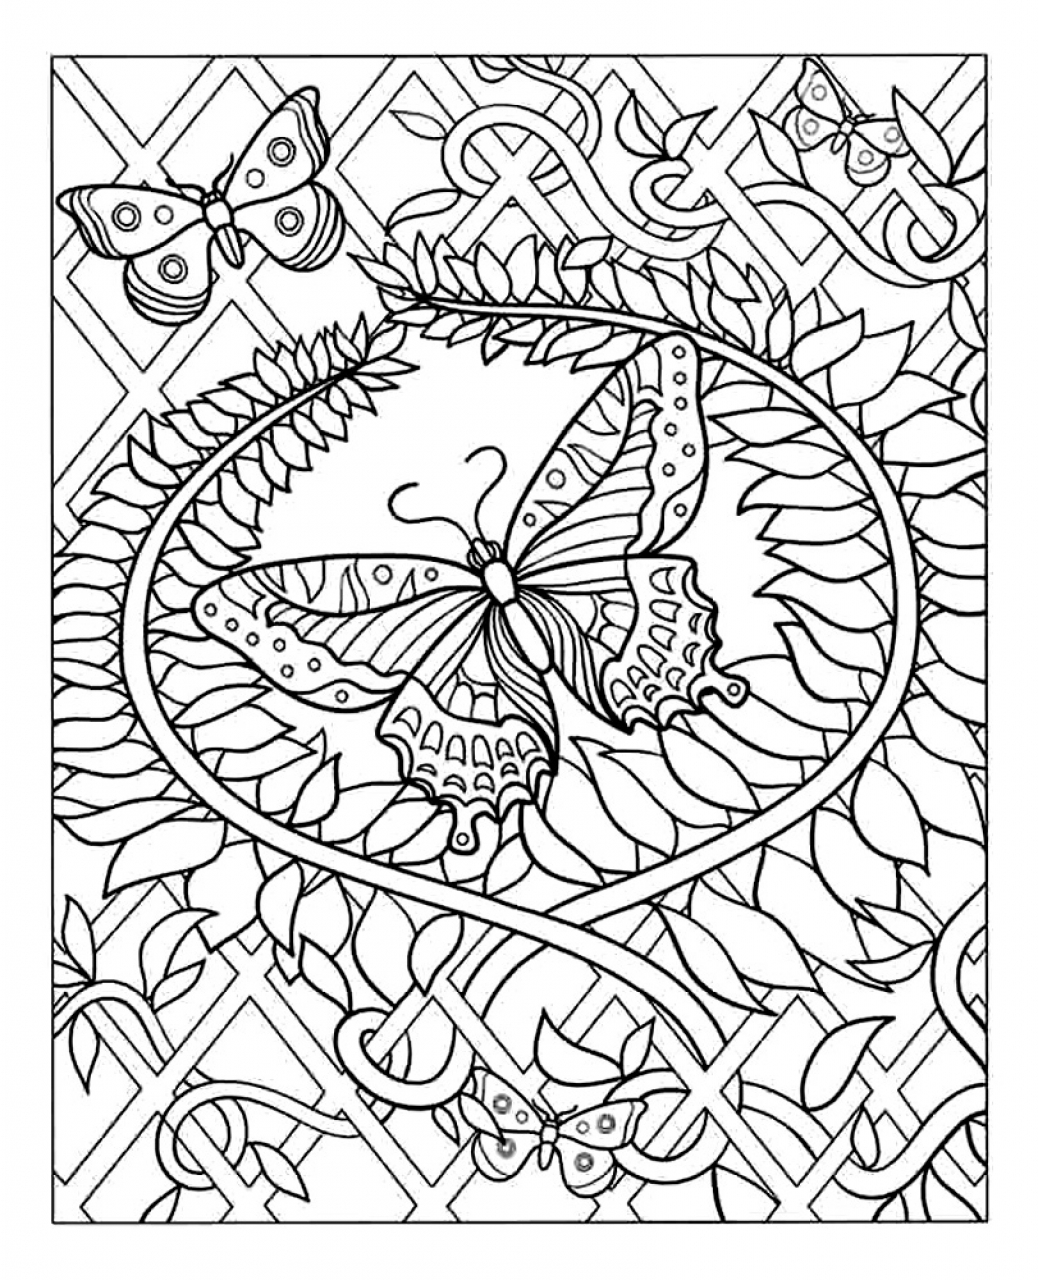 Difficult Adult Coloring Pages to Print Out   45281